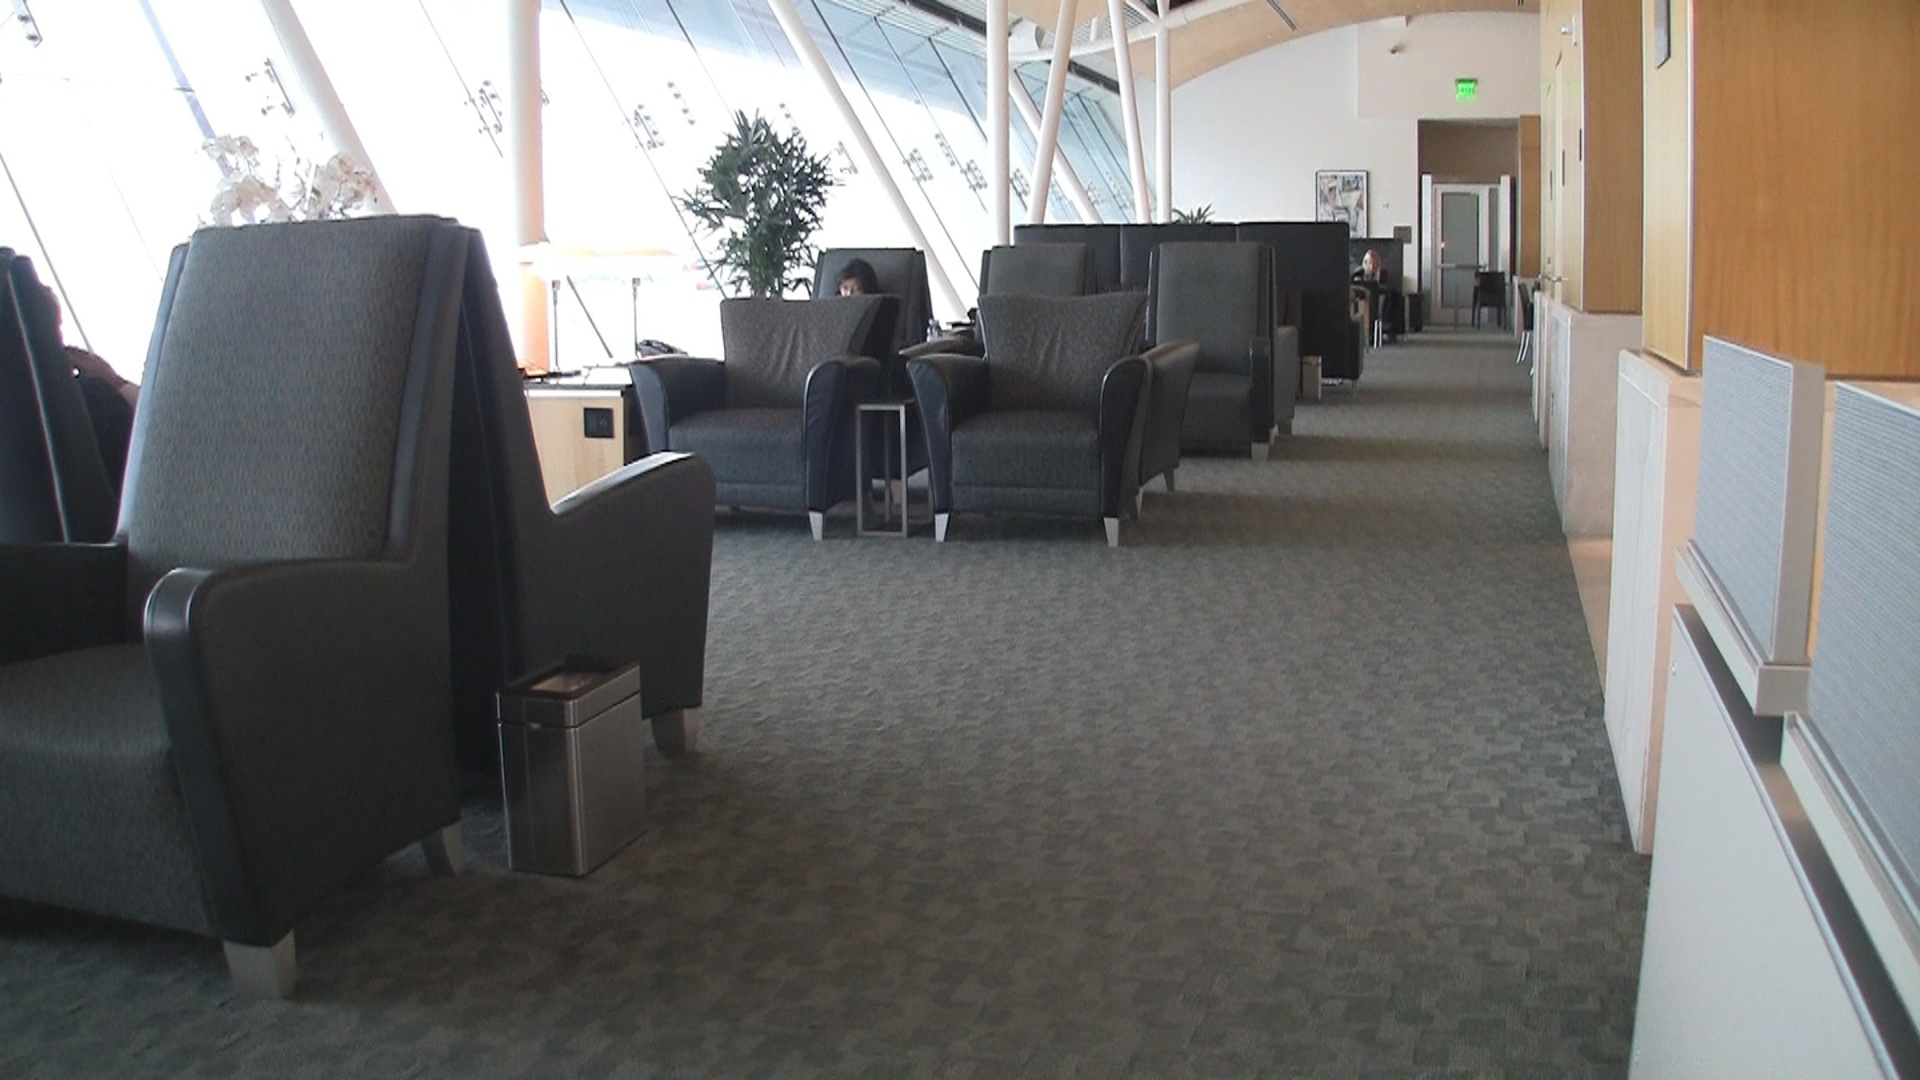 American Airlines First Class Flagship Lounge At Lax